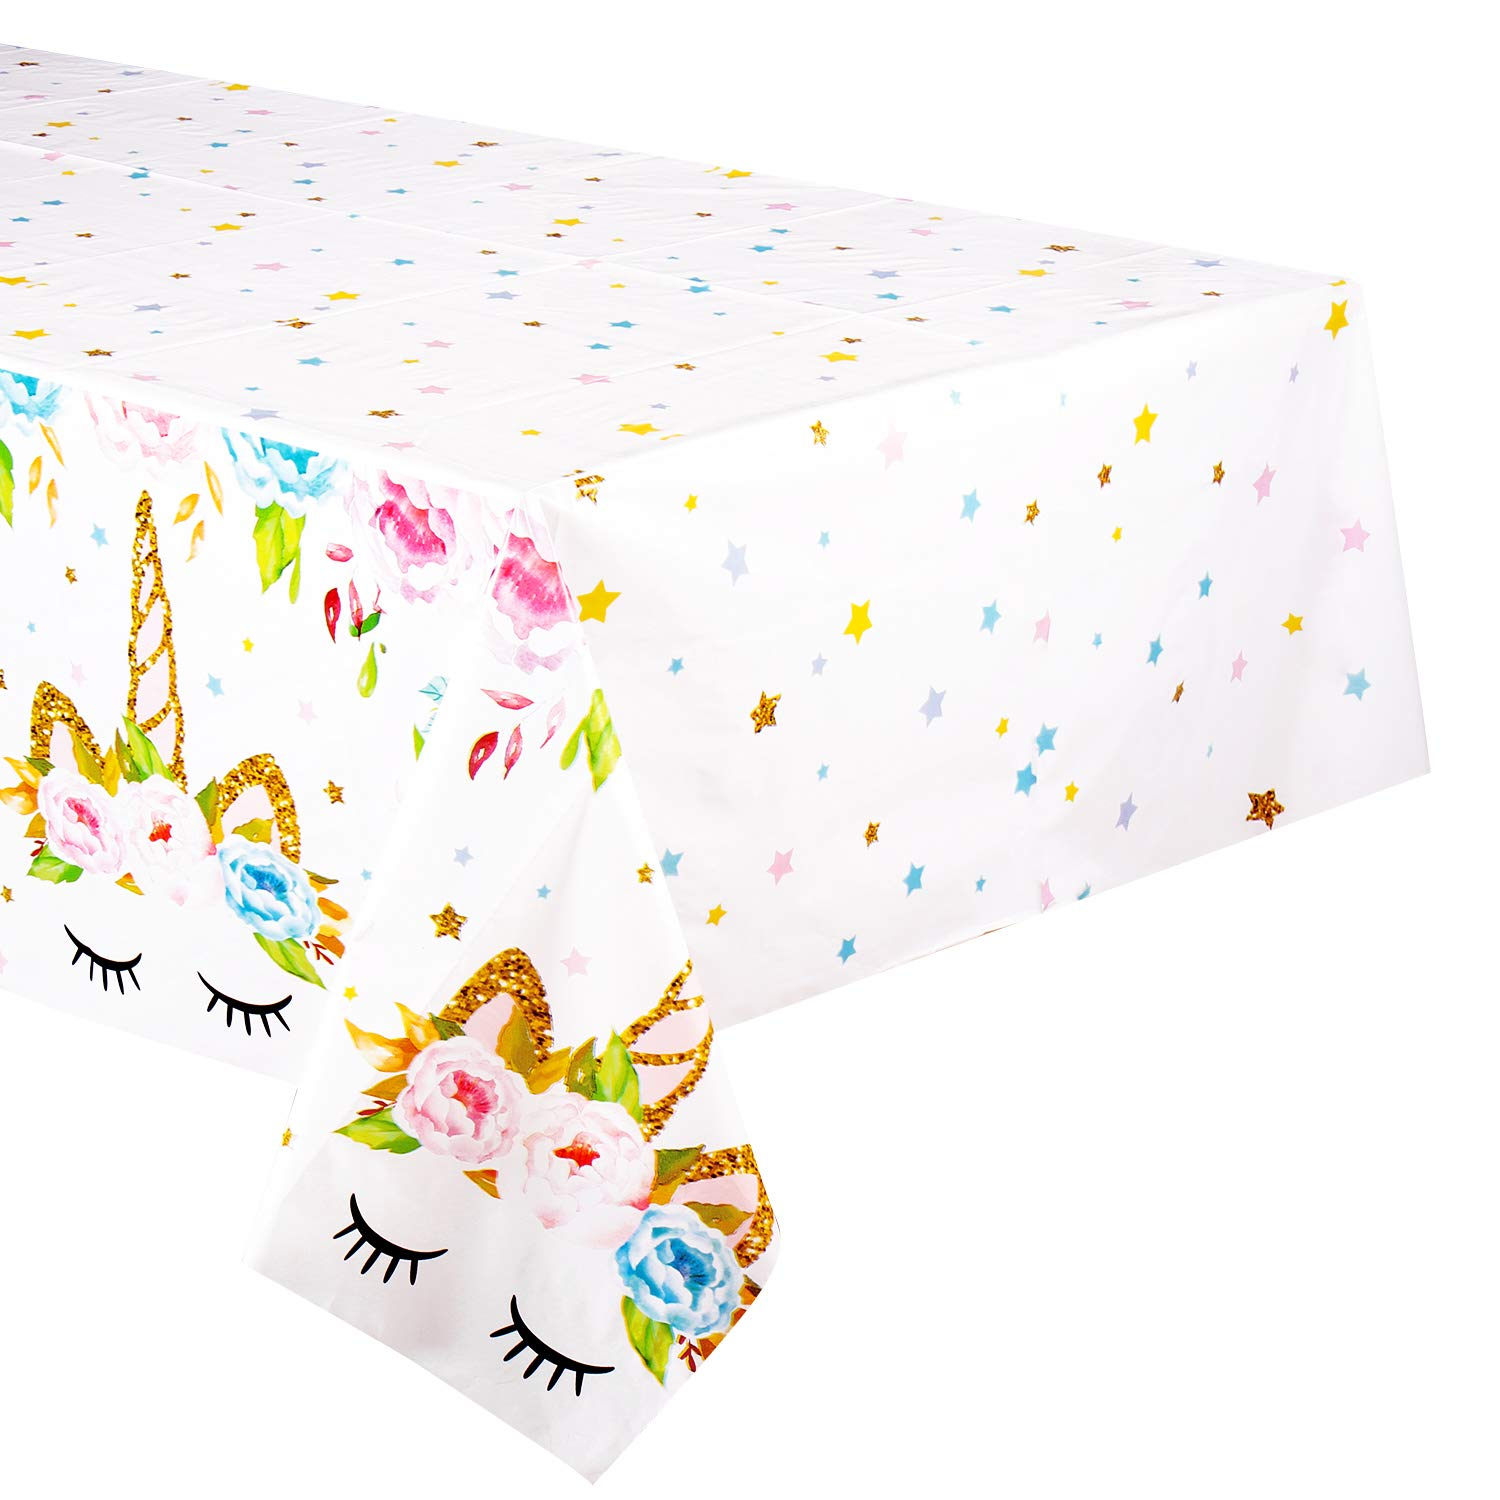 4 Pack Unicorn Plastic Tablecloth - FZR Legend Unicorn Birthday Party Supplies   53 x 90 inches,Disposable Table Covers   Magical Unicorn Party Decorations for Girls and Baby Shower (4)